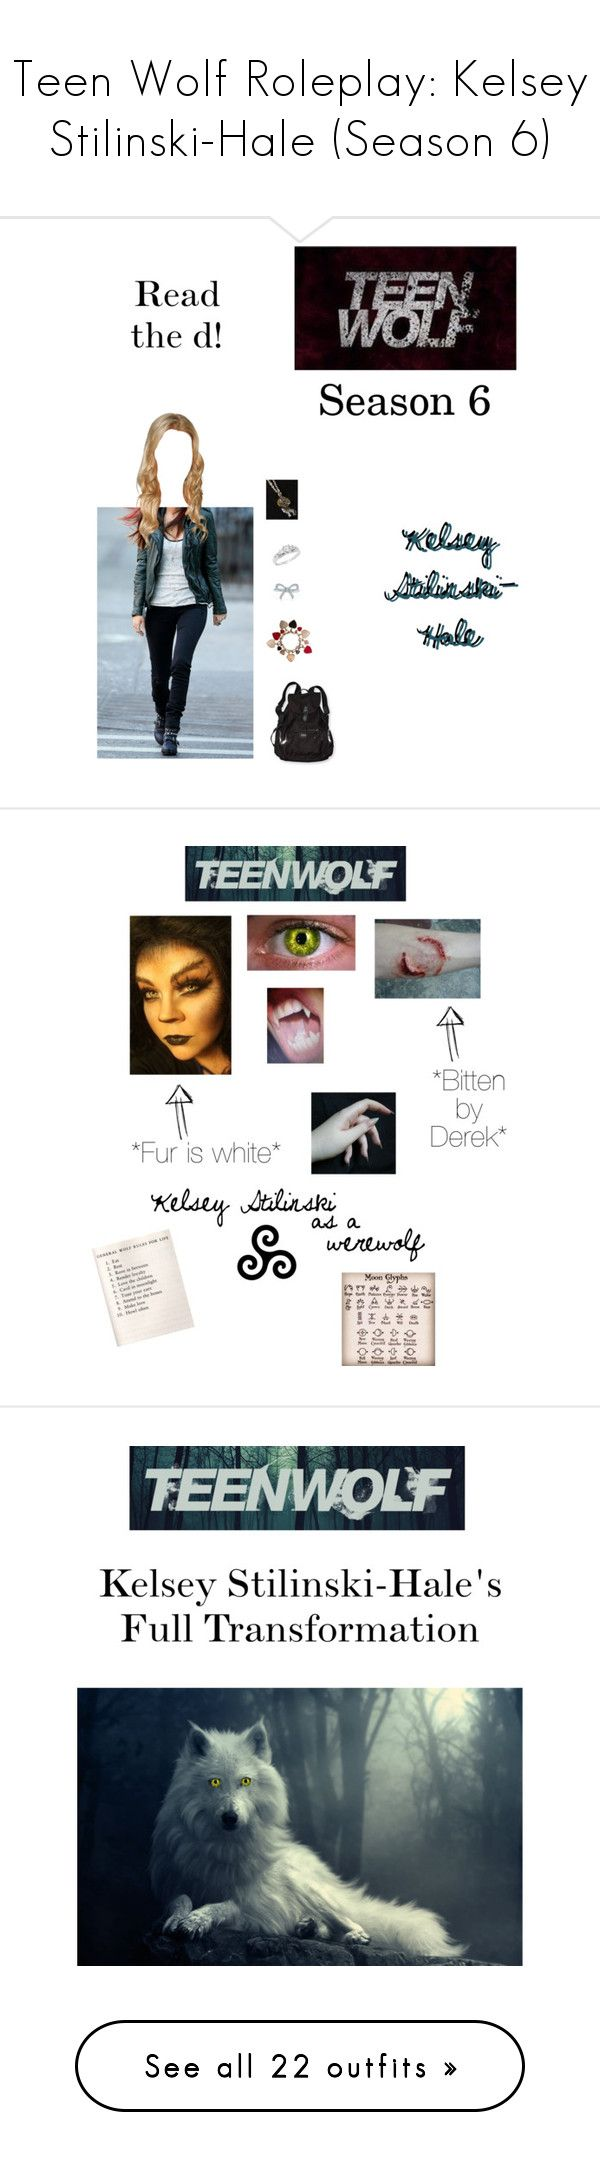 """""""Teen Wolf Roleplay: Kelsey Stilinski-Hale (Season 6)"""" by nerdbucket ❤ liked on Polyvore featuring Ice, Burberry, Nickelodeon, Victoria's Secret, Tiffany & Co., 7 For All Mankind, maurices, Mother Daughter Jewelry, Keds and Lime Crime"""